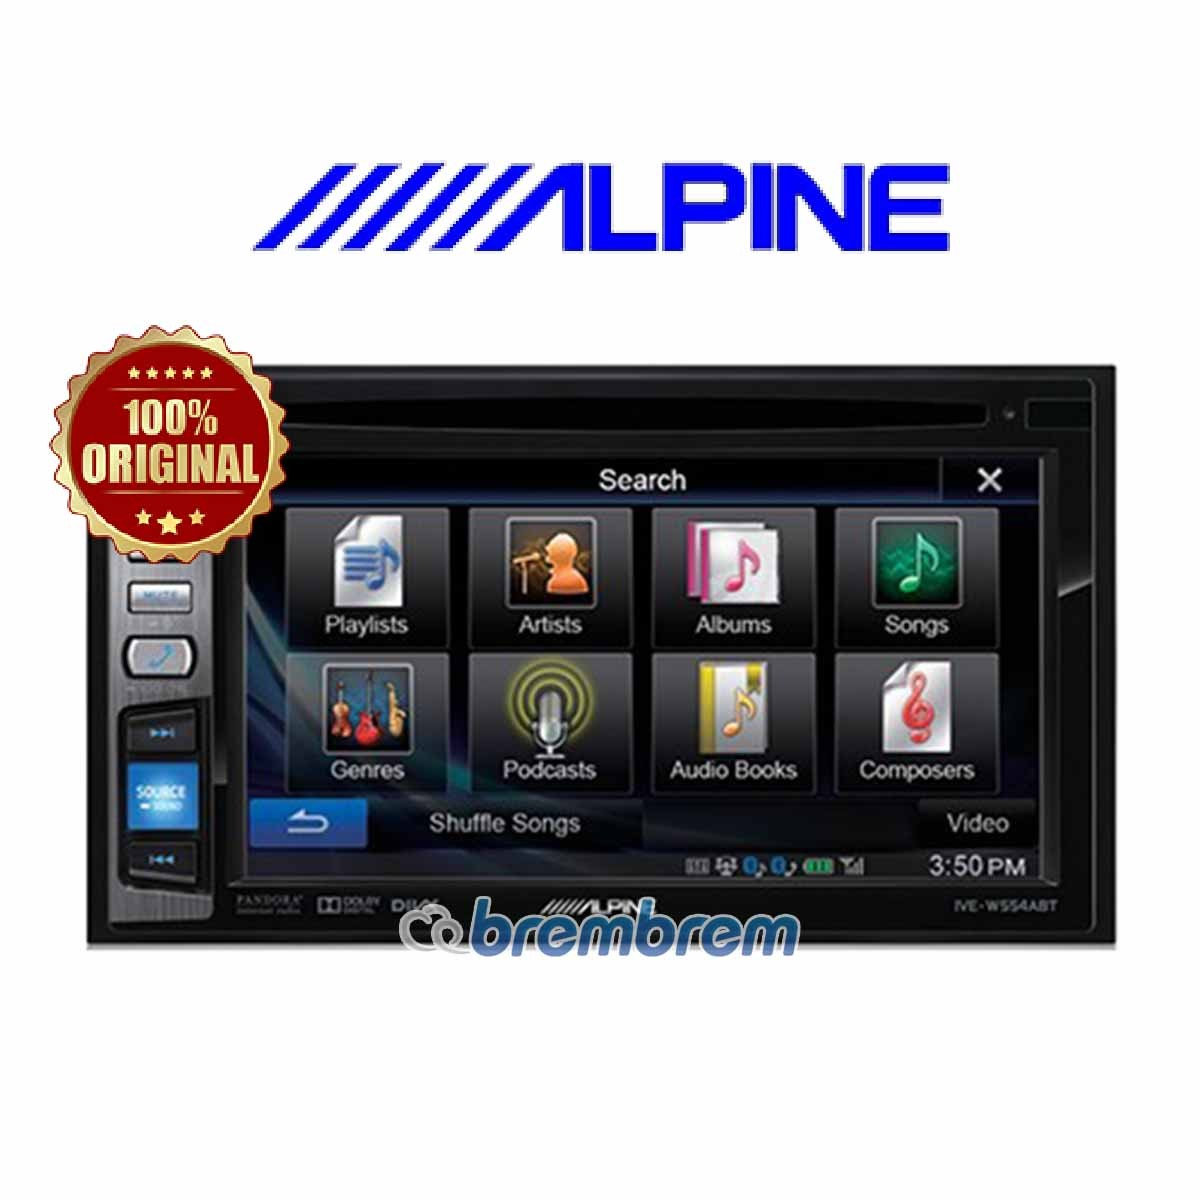 ALPINE IVE W554 EBT - HEADUNIT DOUBLE DIN